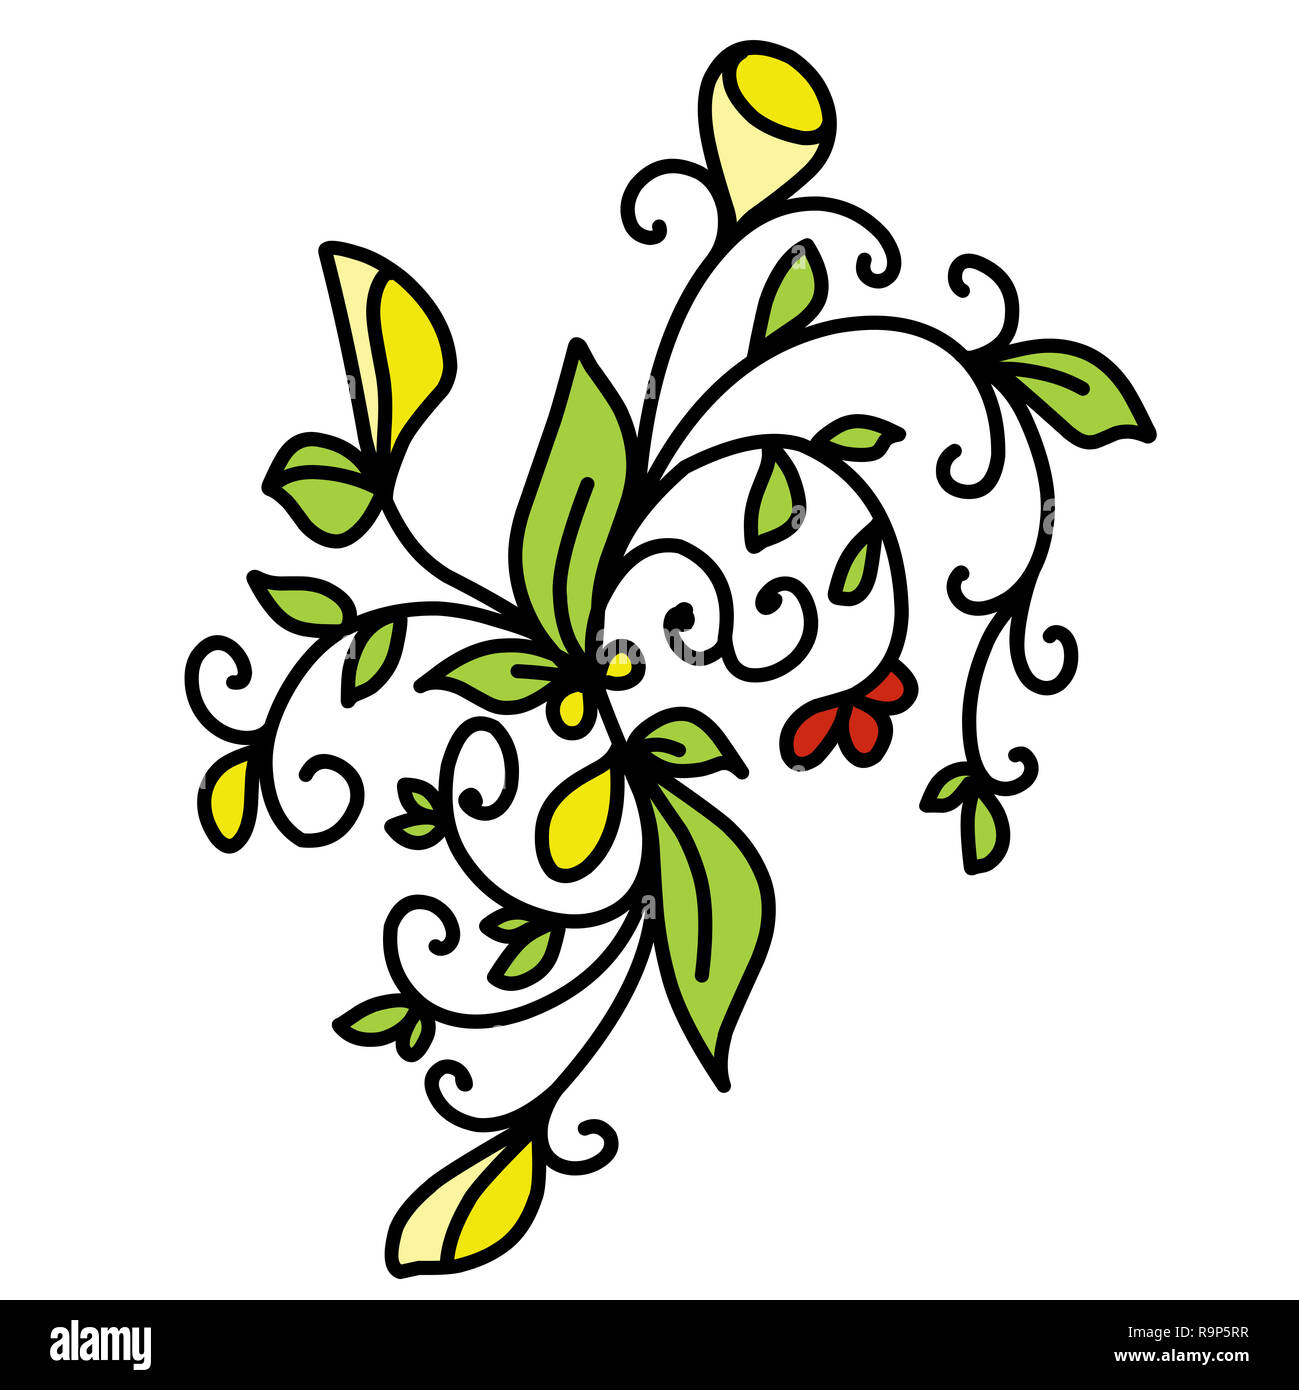 Stock Illustration Drawing Plants on a White Background - Stock Image